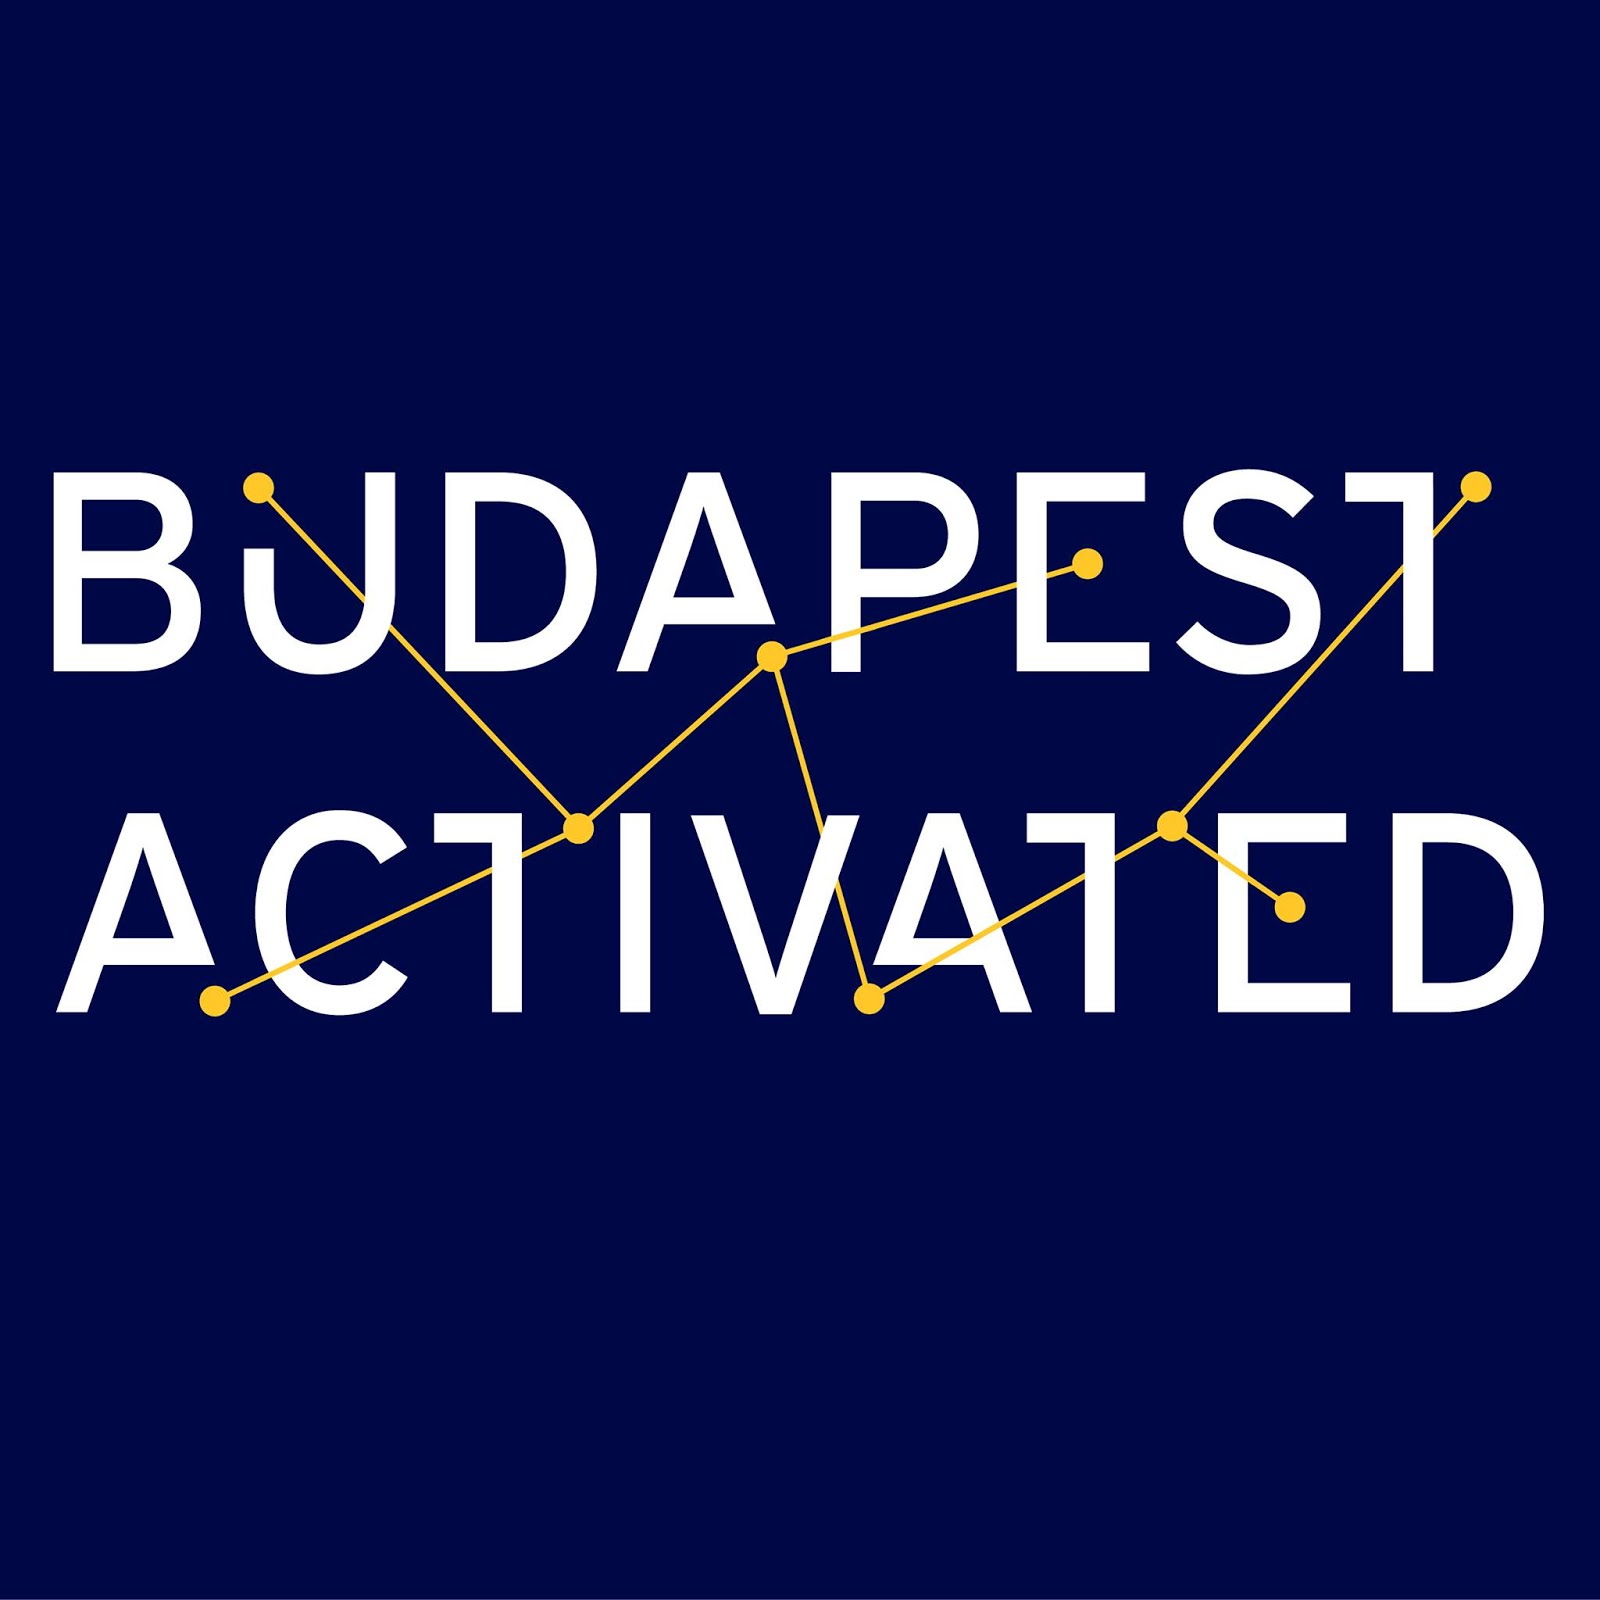 BUDAPEST ACTIVATED